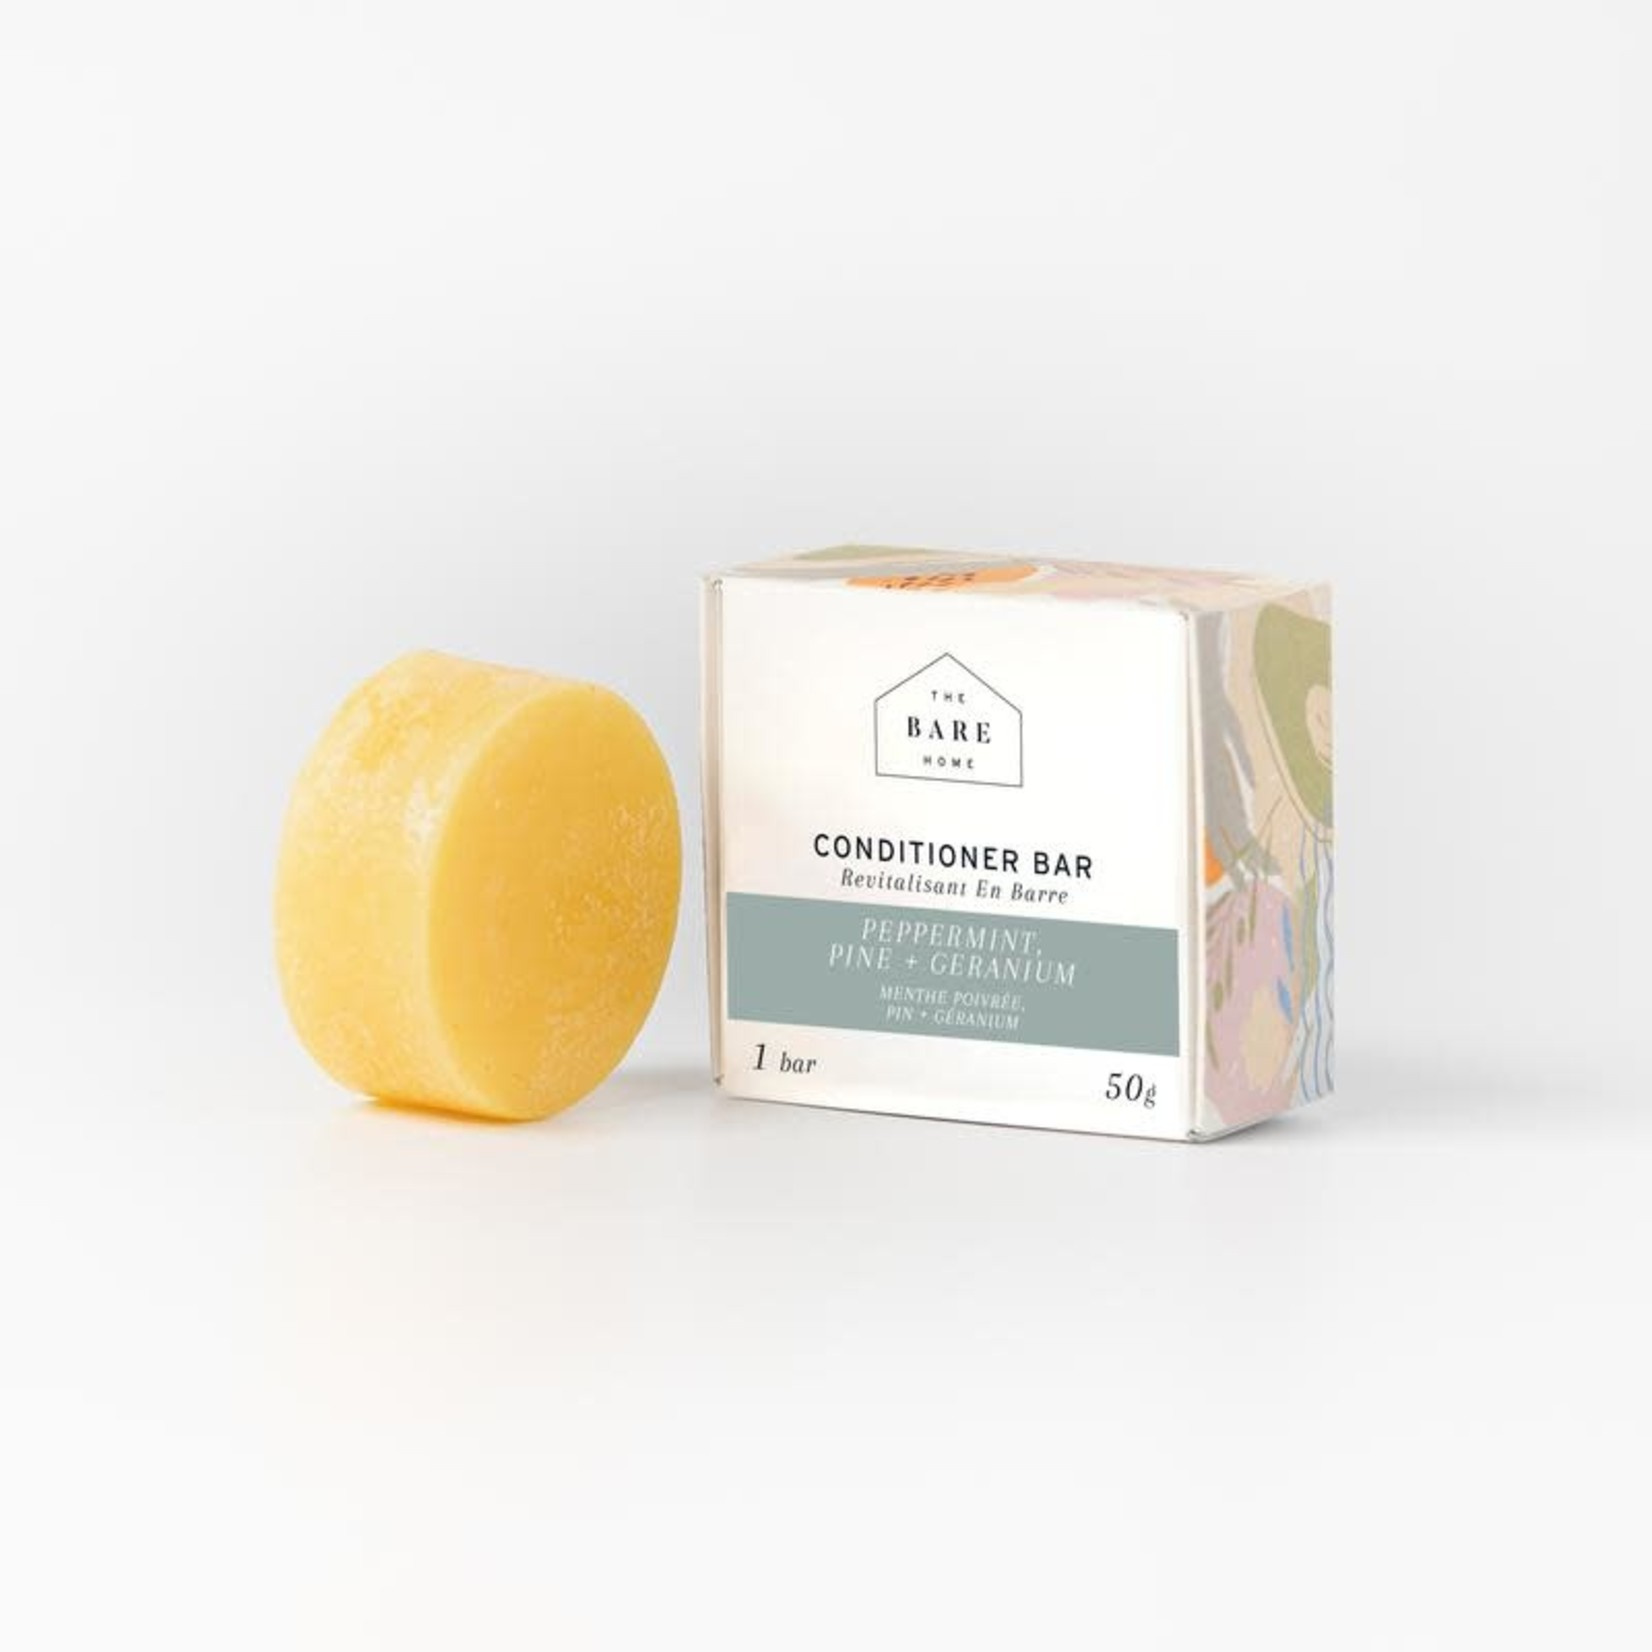 The Bare Home Conditioner Bar Pine and Peppermint